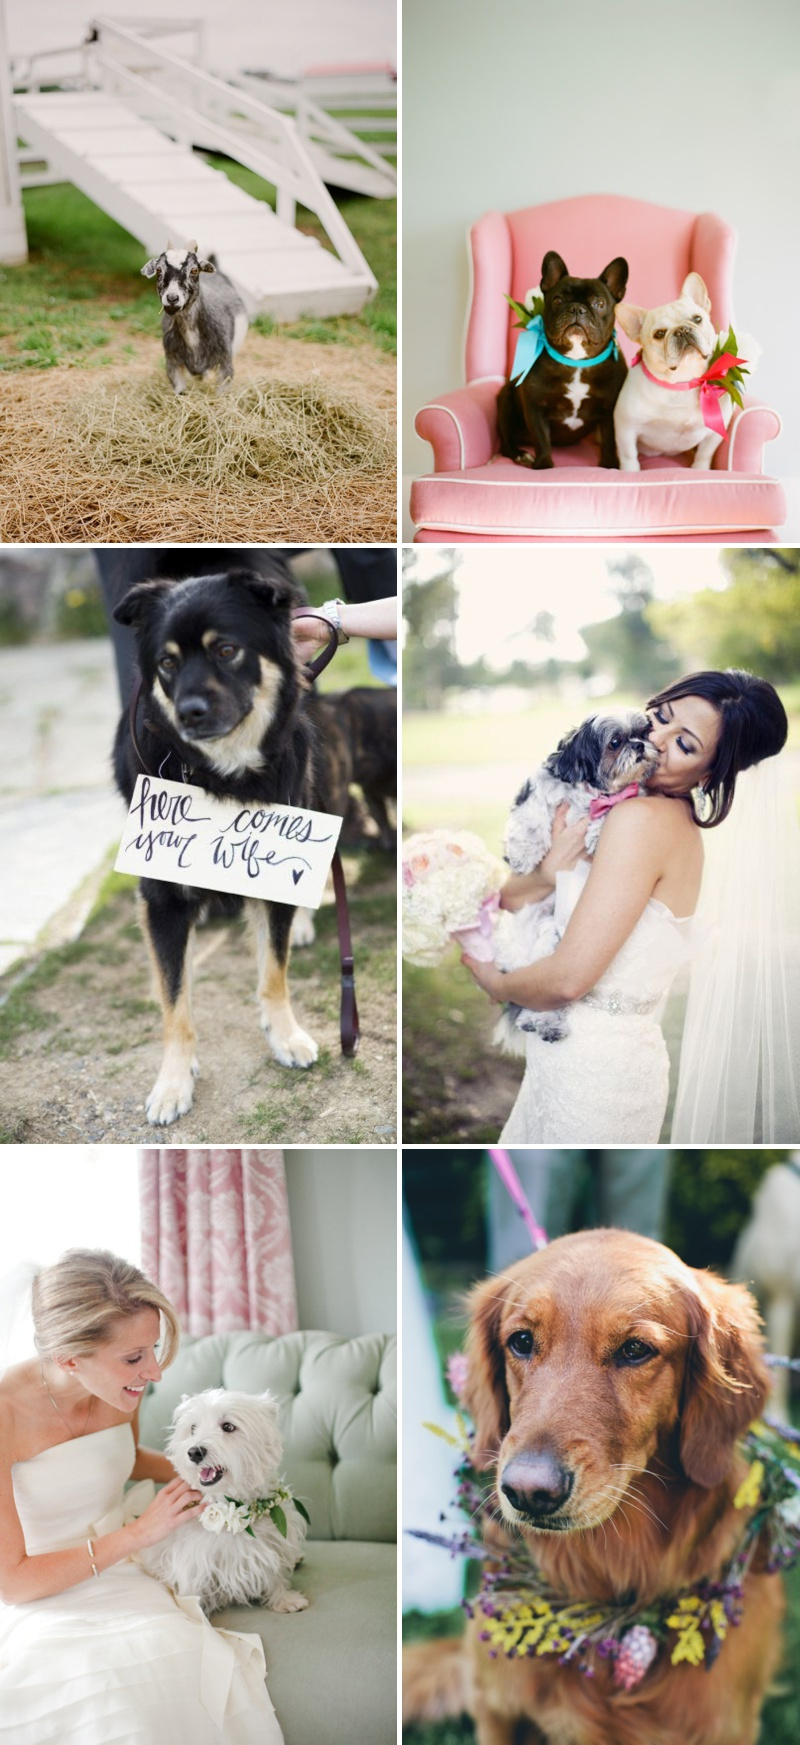 Horses, Dogs and Pets At Weddings Discussion Post 2